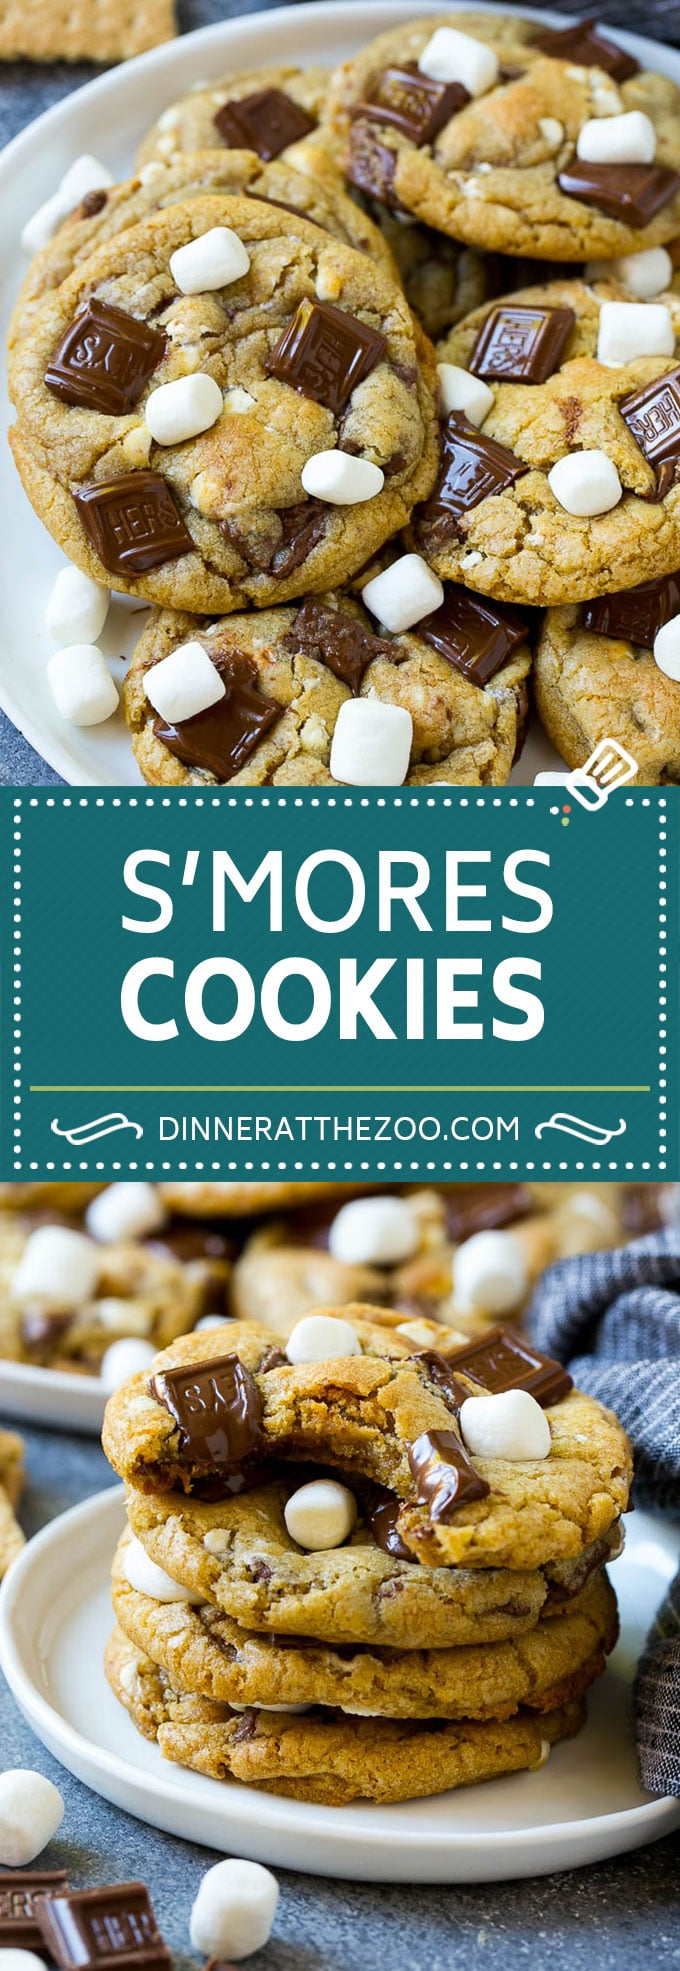 S'mores Cookies Recipe | Marshmallow Cookies #smores #marshmallow #chocolate #cookies #dessert #dinneratthezoo